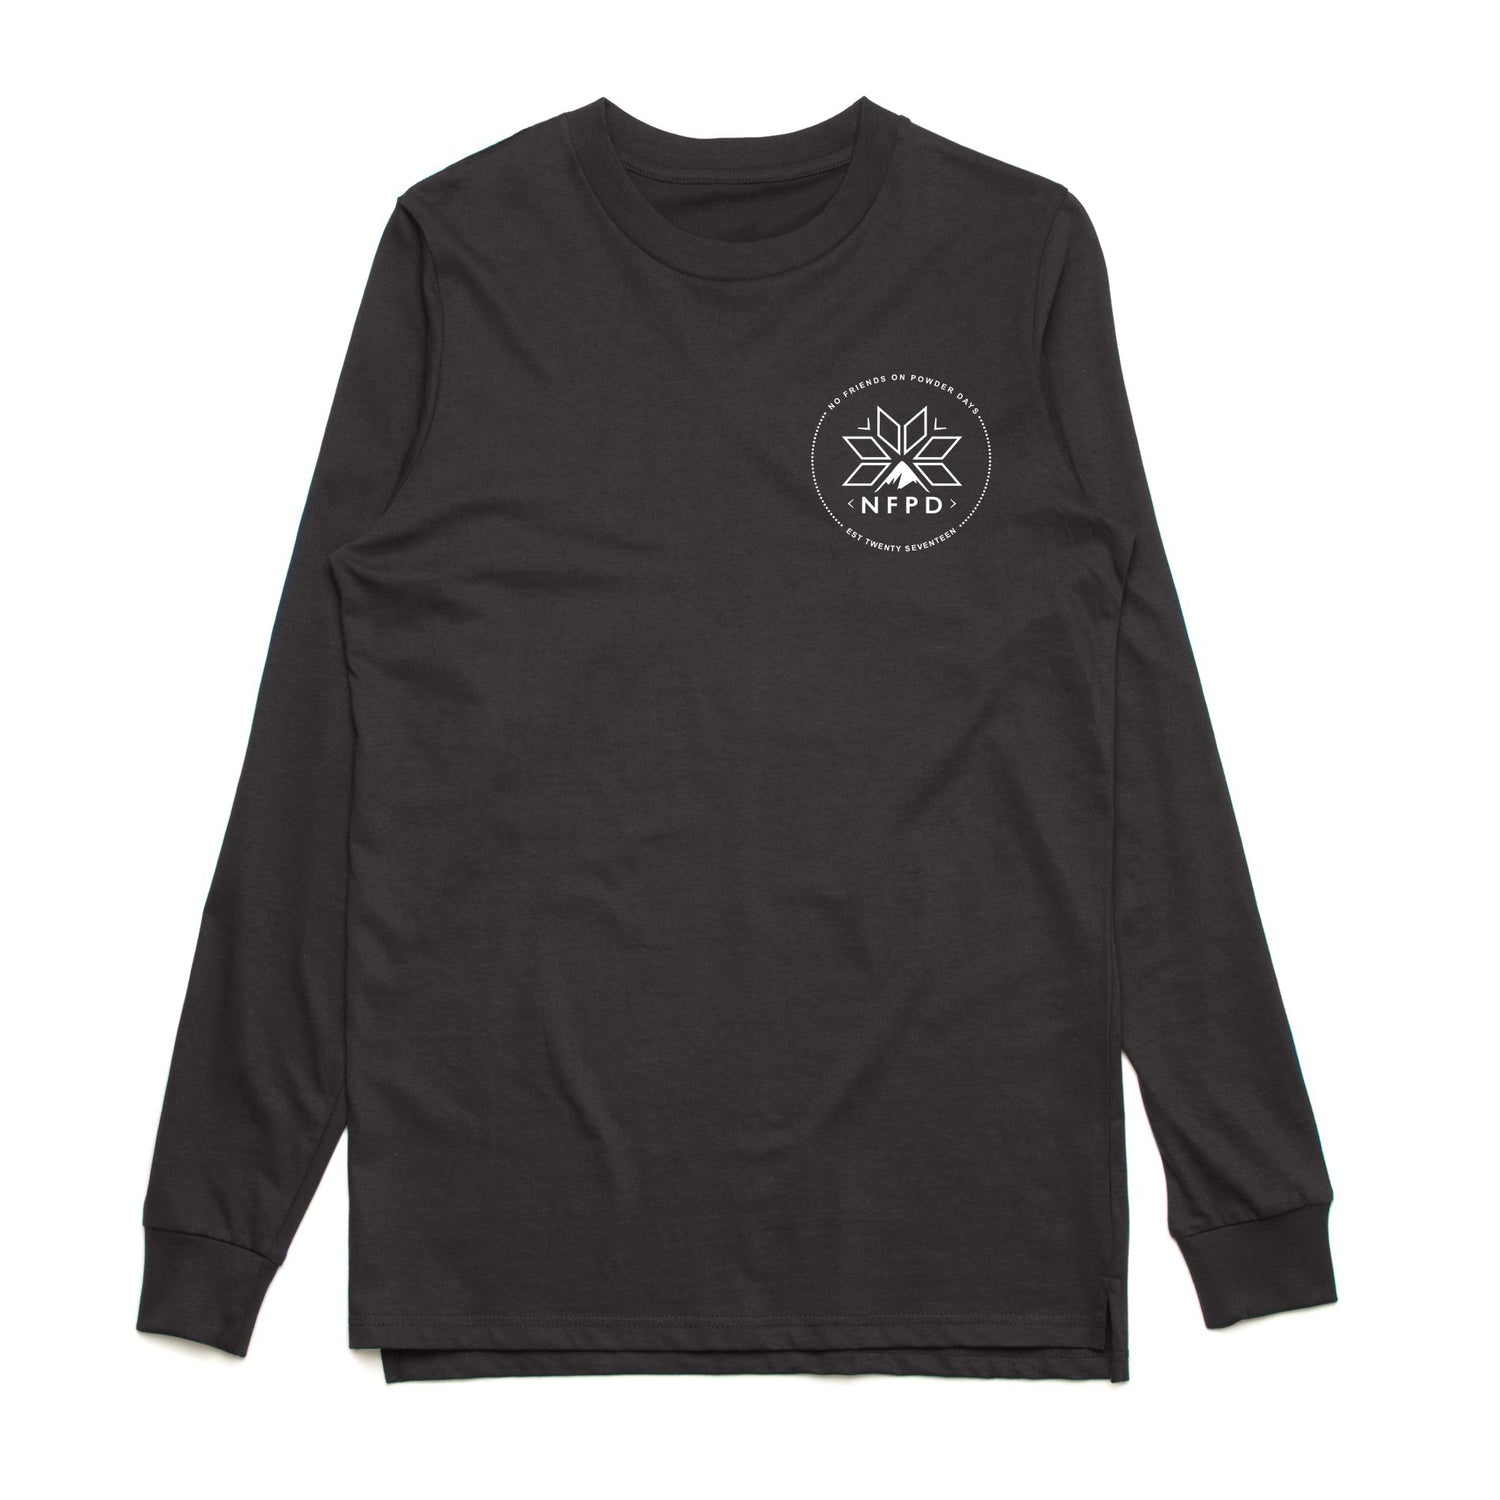 100% Cotton Long Sleeve-T - Unisex